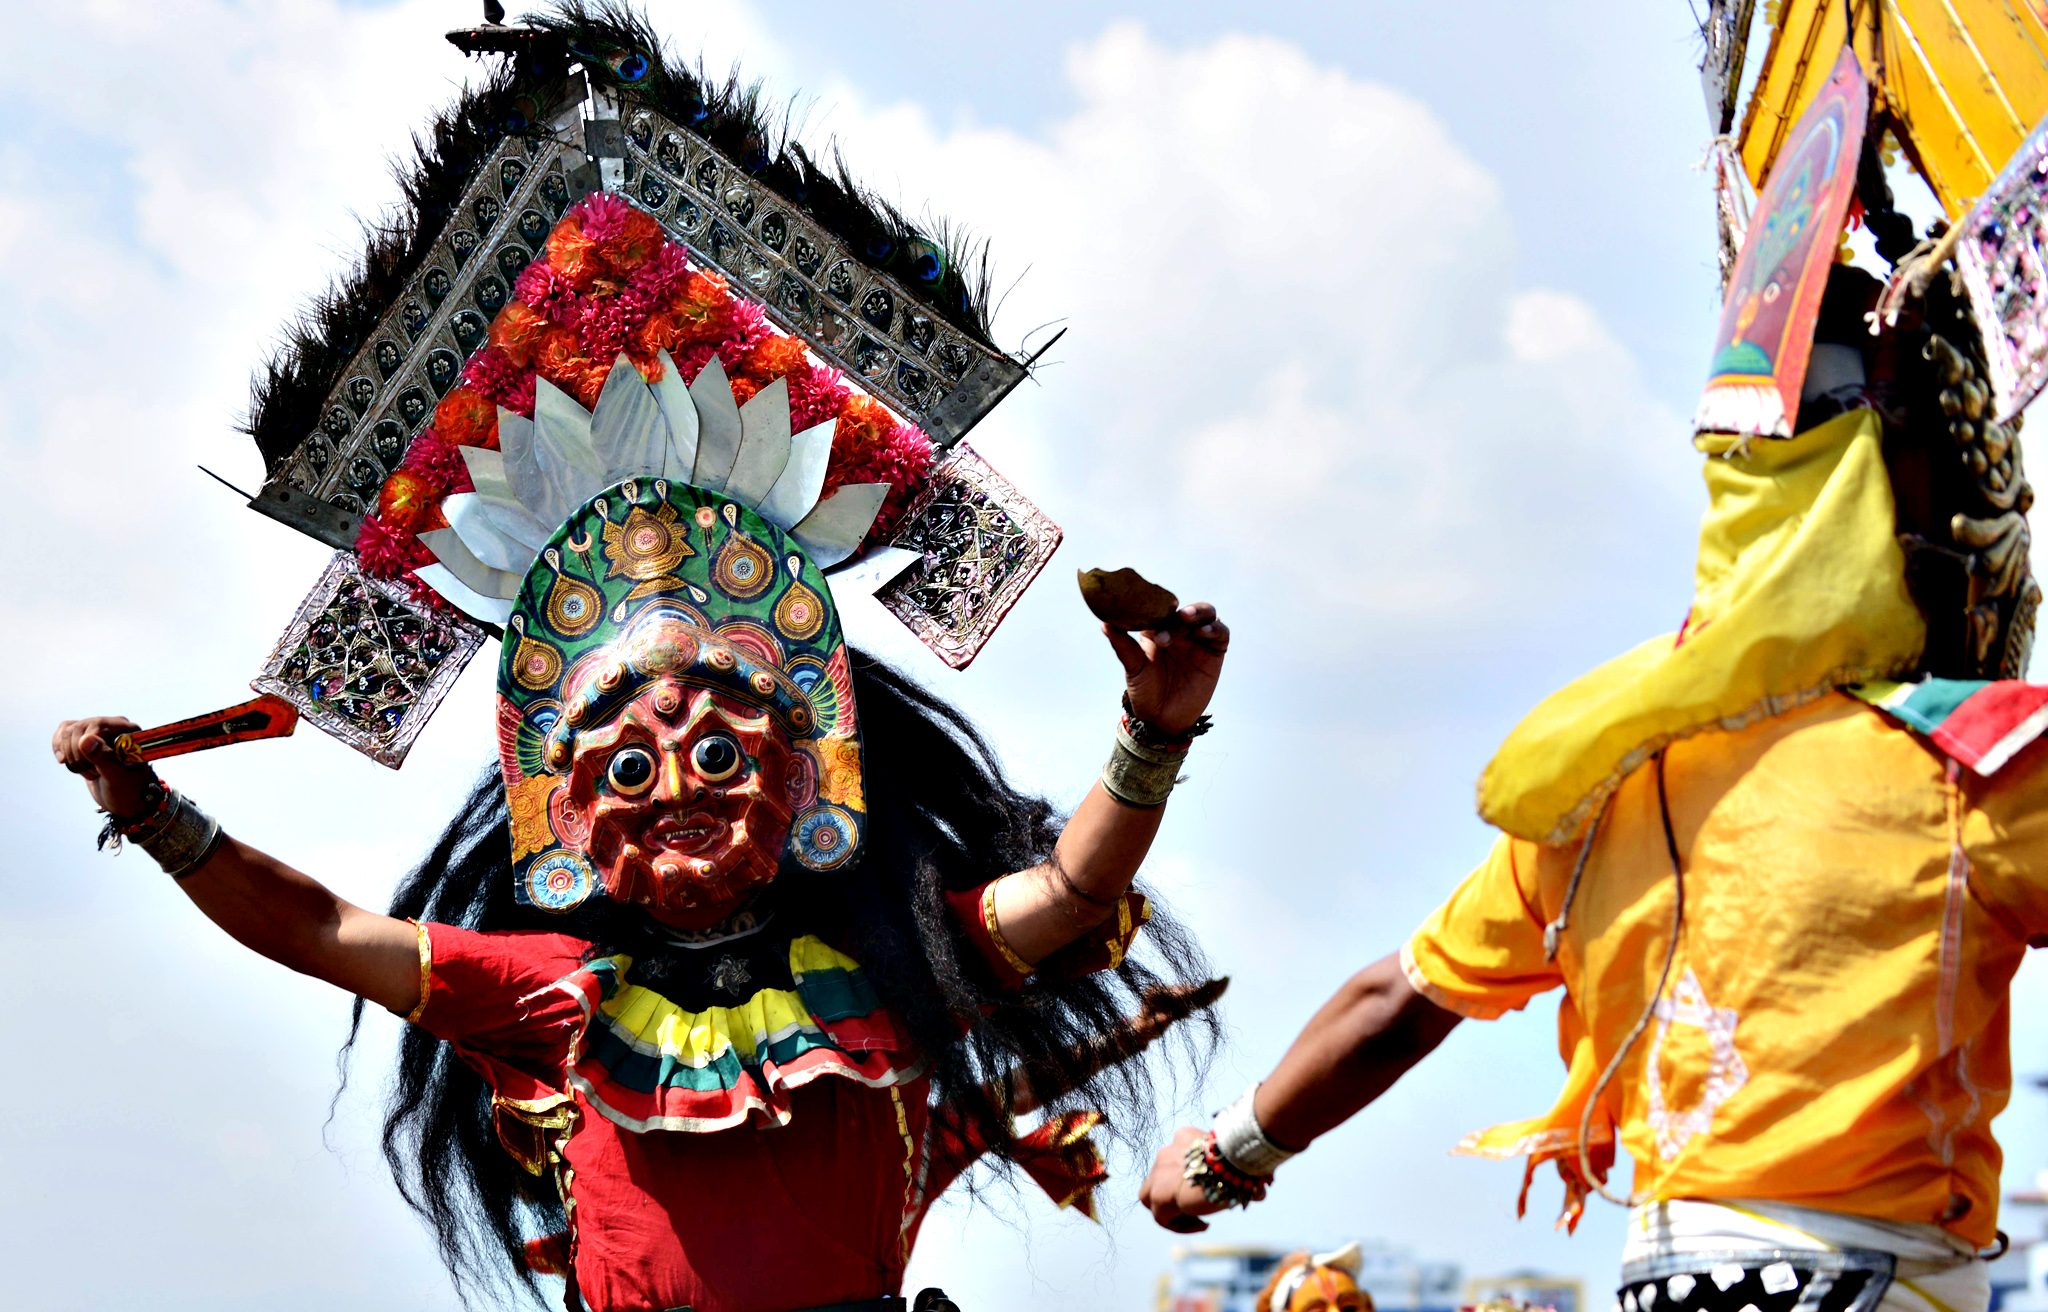 Nepalese masked dancers perform during celebrations for the 7th anniversary of Republic Day in Kathmandu on May 29, 2014. Political parties in Nepal are working to draft a new constitution following the country's Constituent Assembly elections held on November 19, 2013.